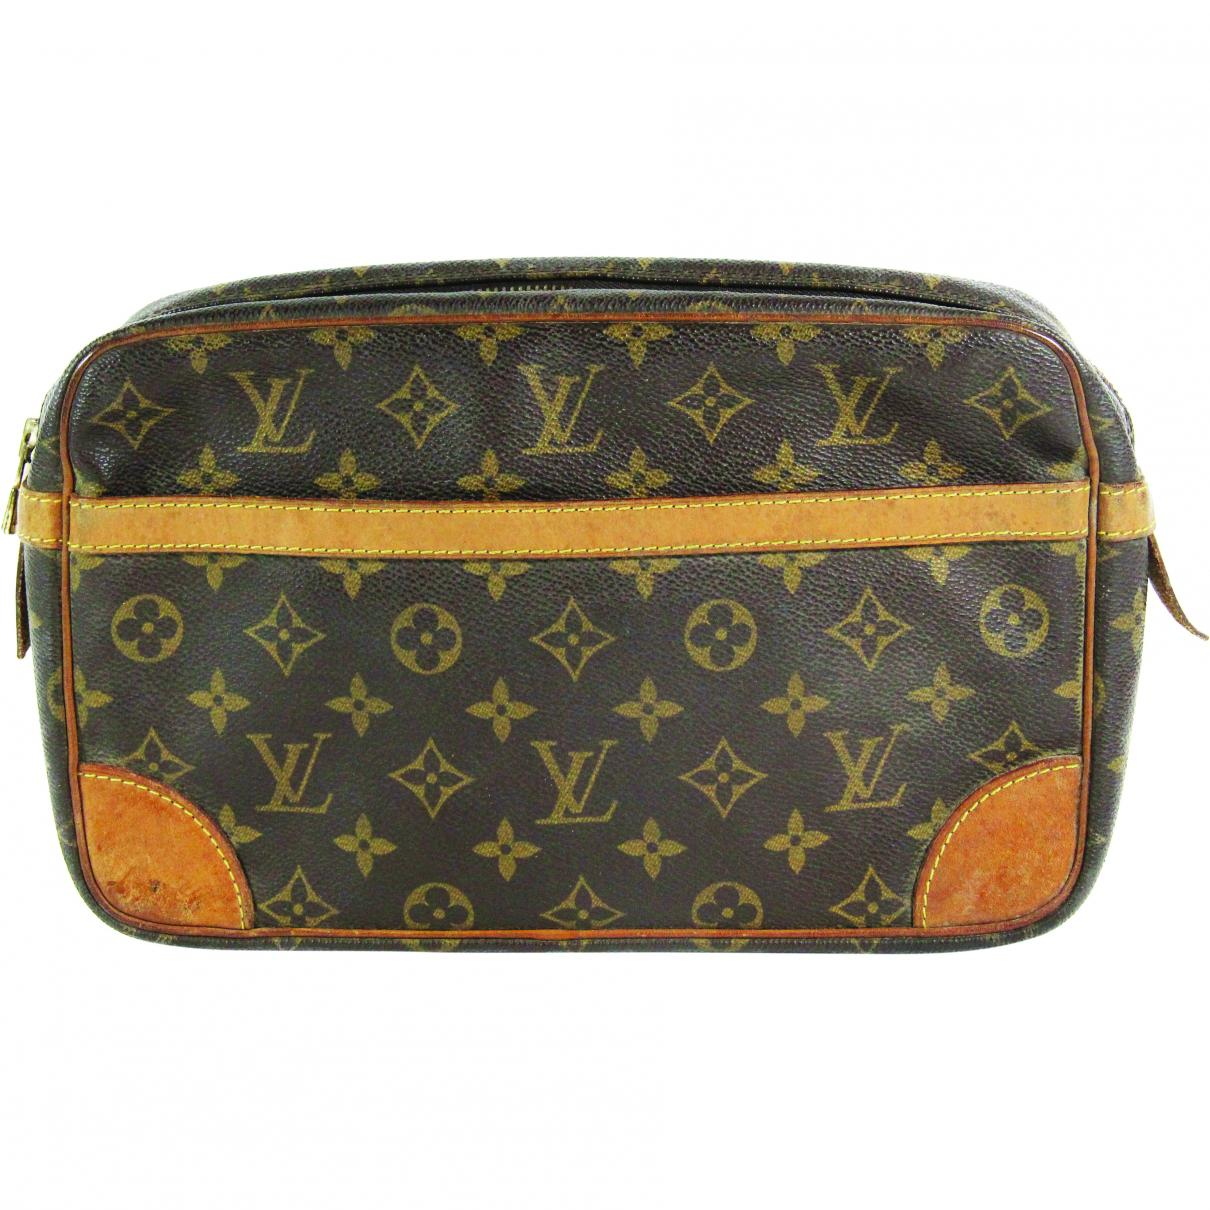 fc849fed9684 Louis Vuitton. Women's Pre-owned Vintage Brown Cloth Clutch Bags. $249 From Vestiaire  Collective